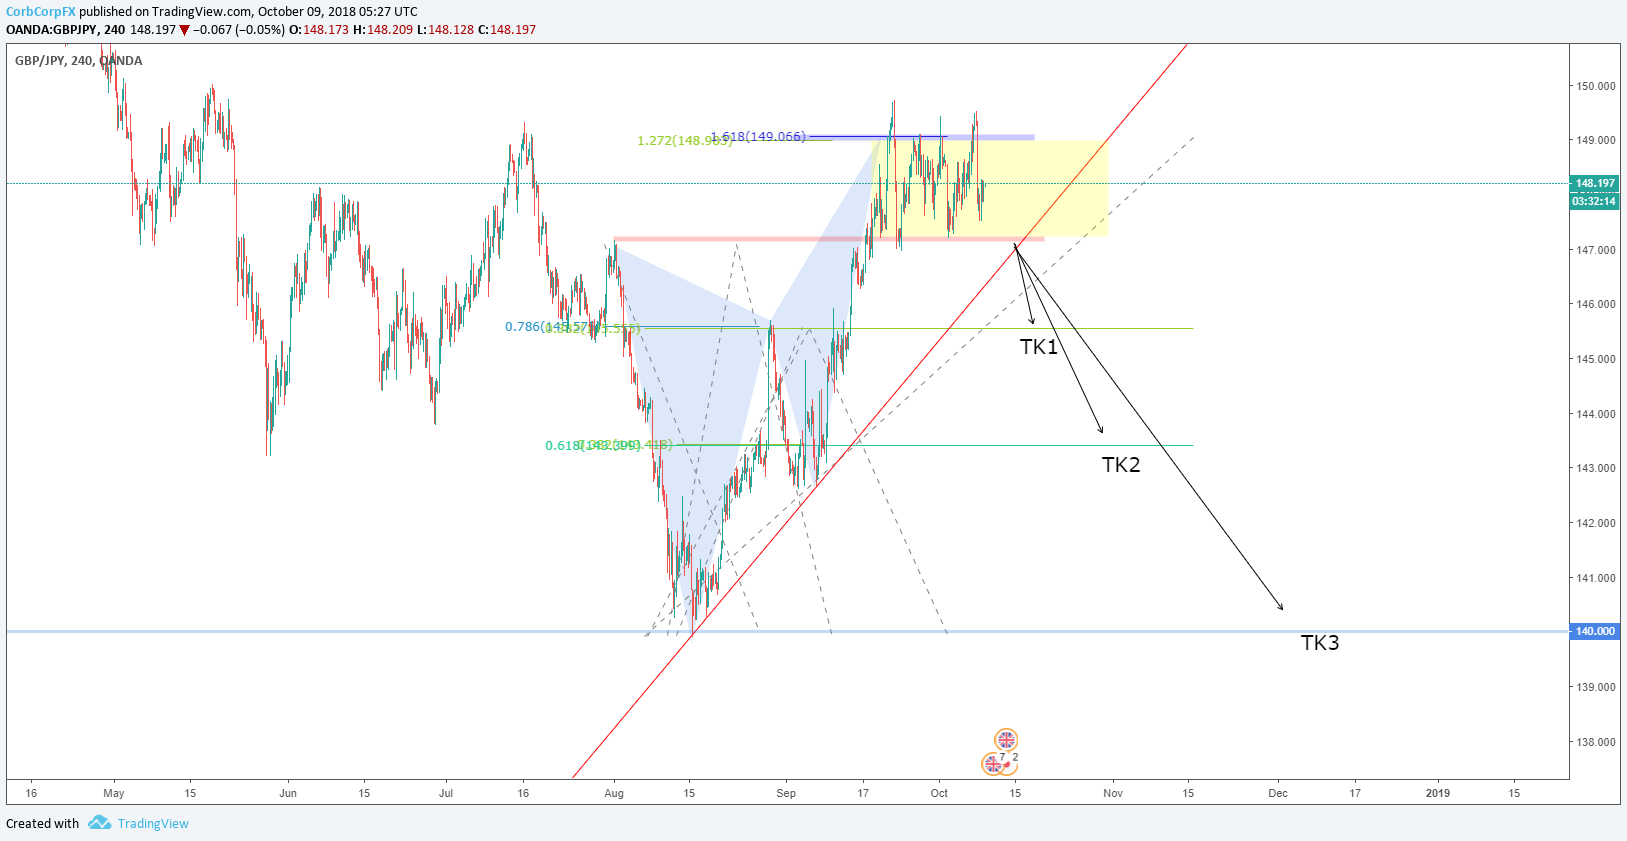 Let's do some technical on the GBPJPY